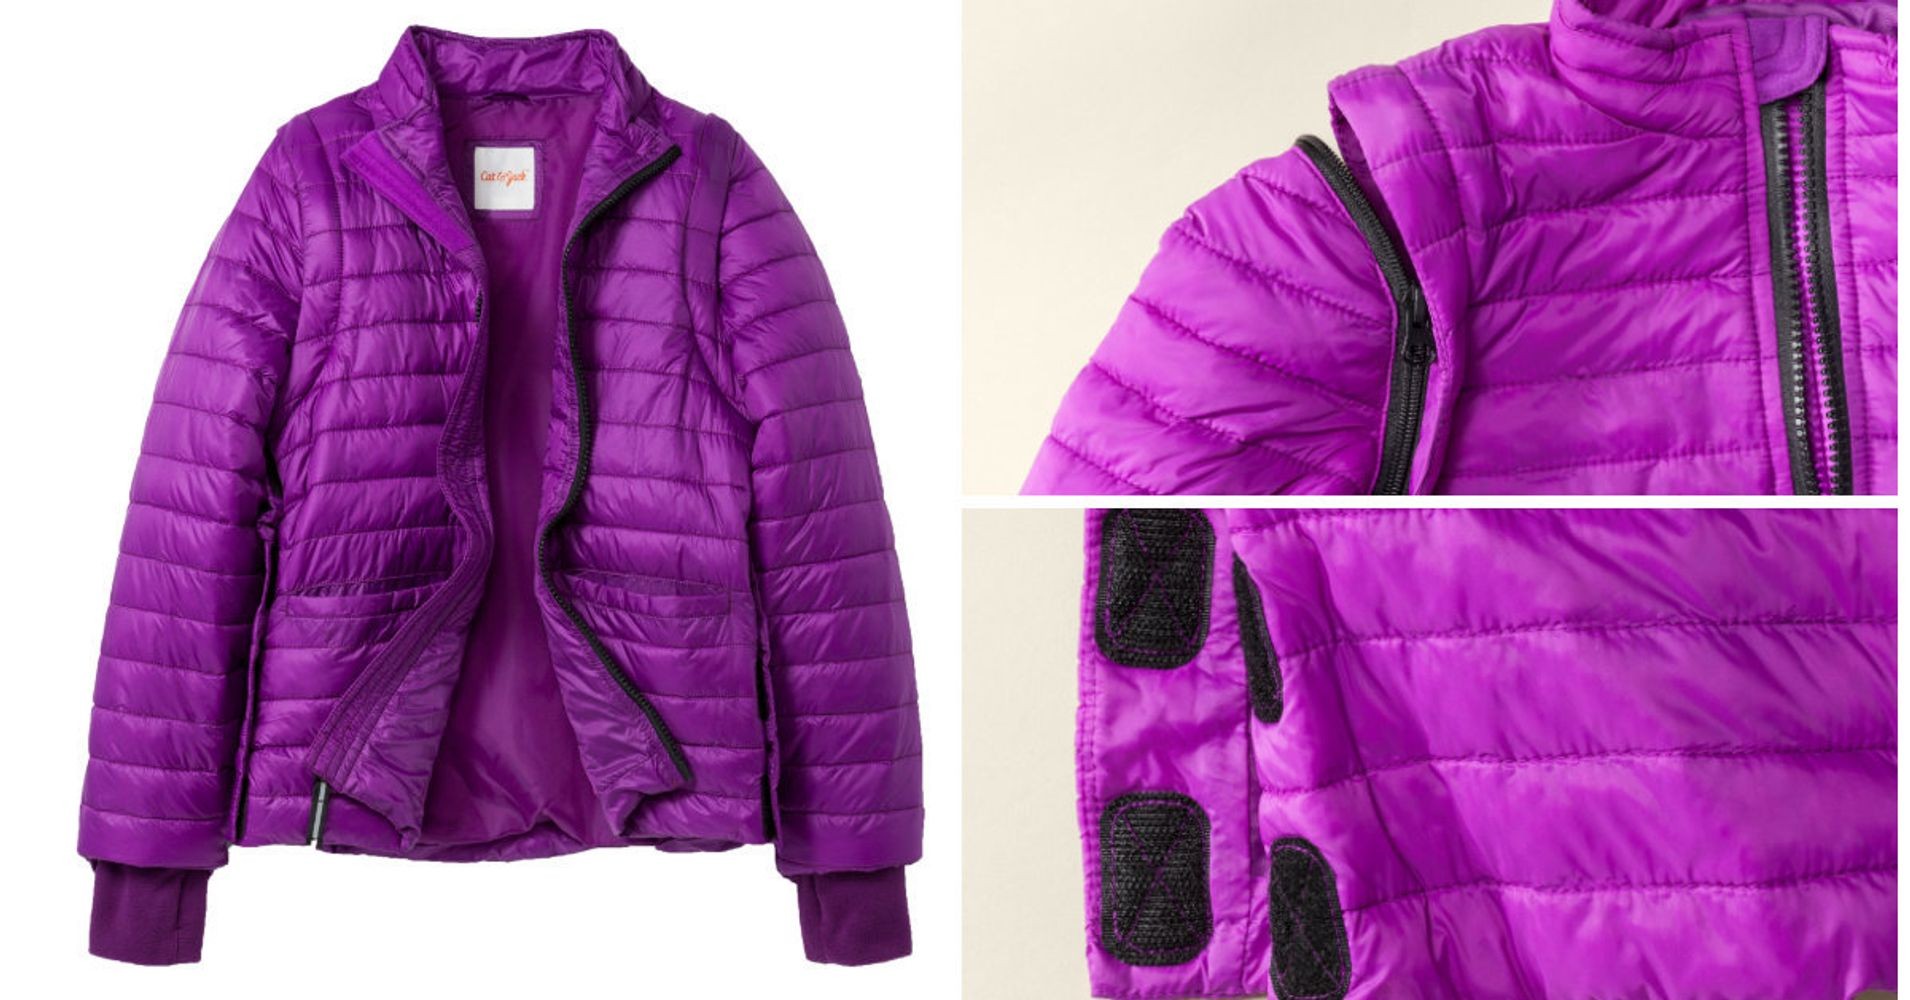 738f8e397 Target Is Releasing Adaptive Apparel For Kids With Disabilities   HuffPost  Life